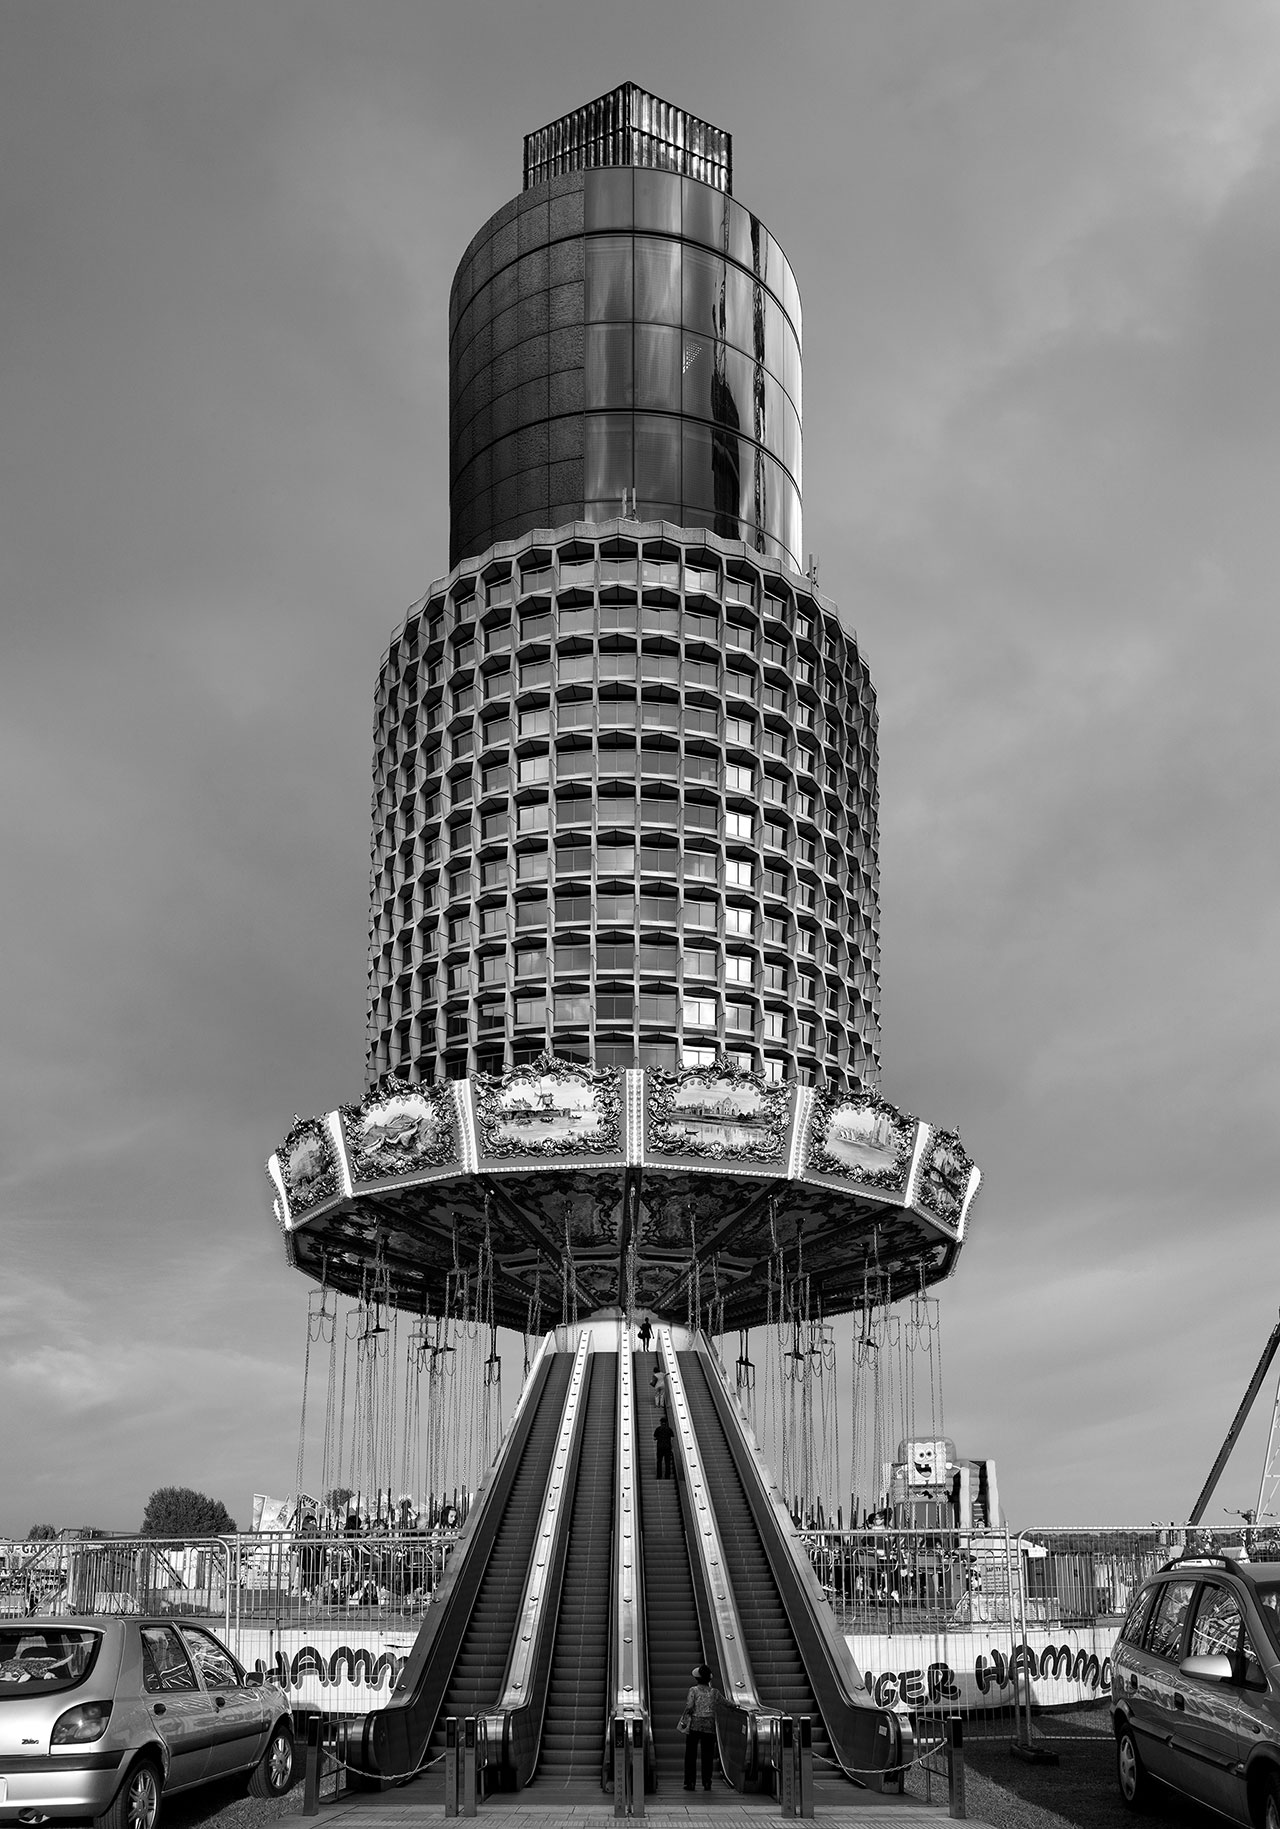 Beomsik Won,Archisculpture 028, 2014. Archival pigment print, 70x49 or 100x70 or 142x100cm.